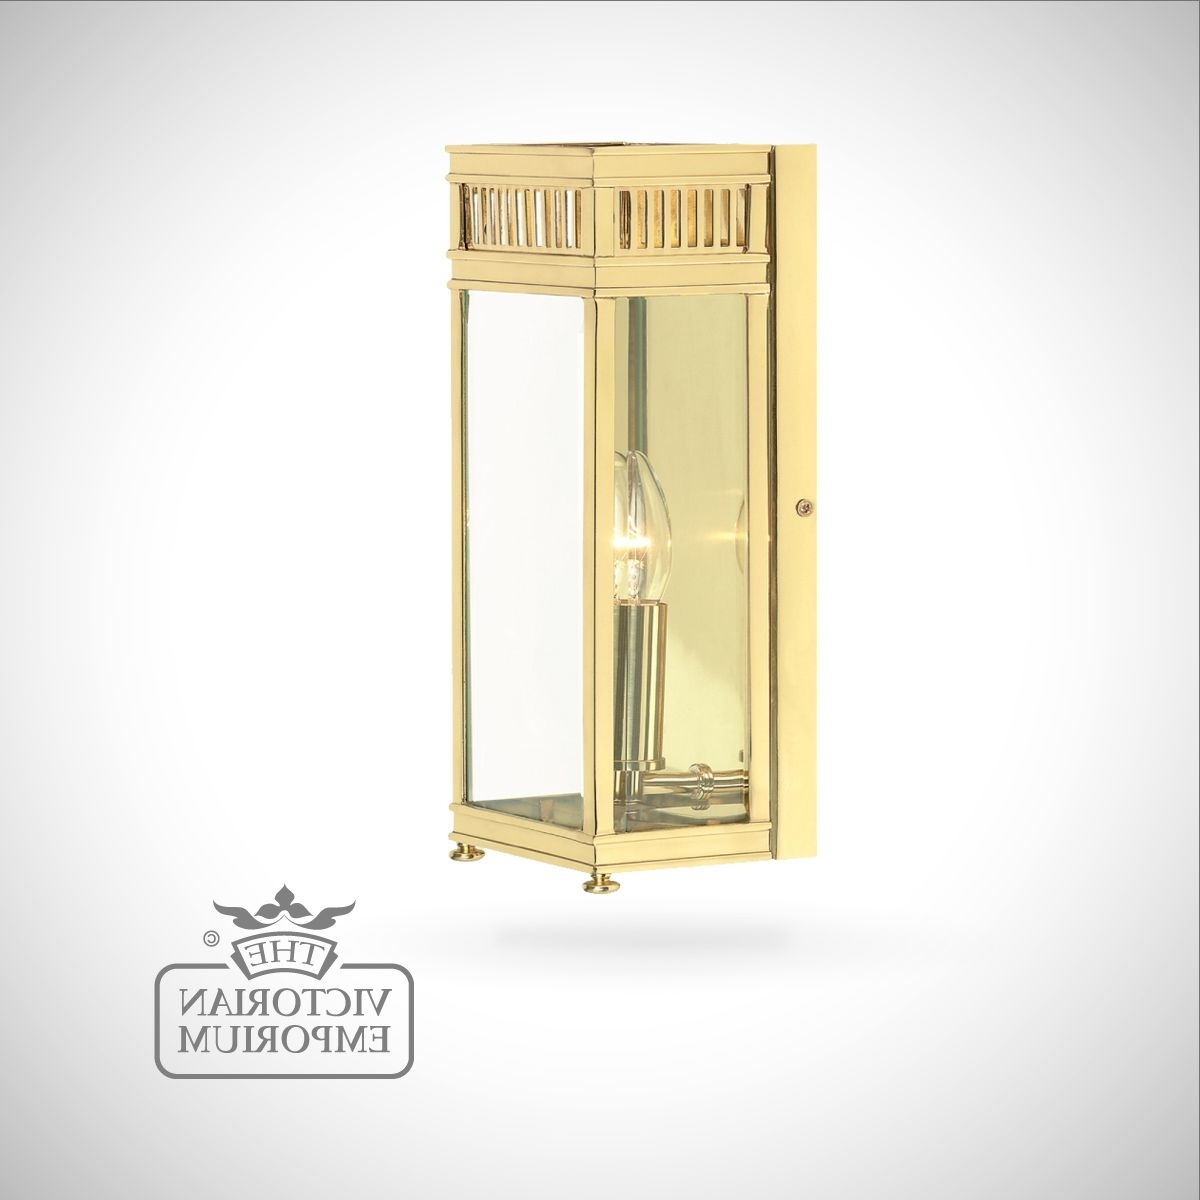 Polished Brass Outdoor Wall Lighting Inside 2018 Holborn Wall Lantern In Polished Brass – Small (View 10 of 20)